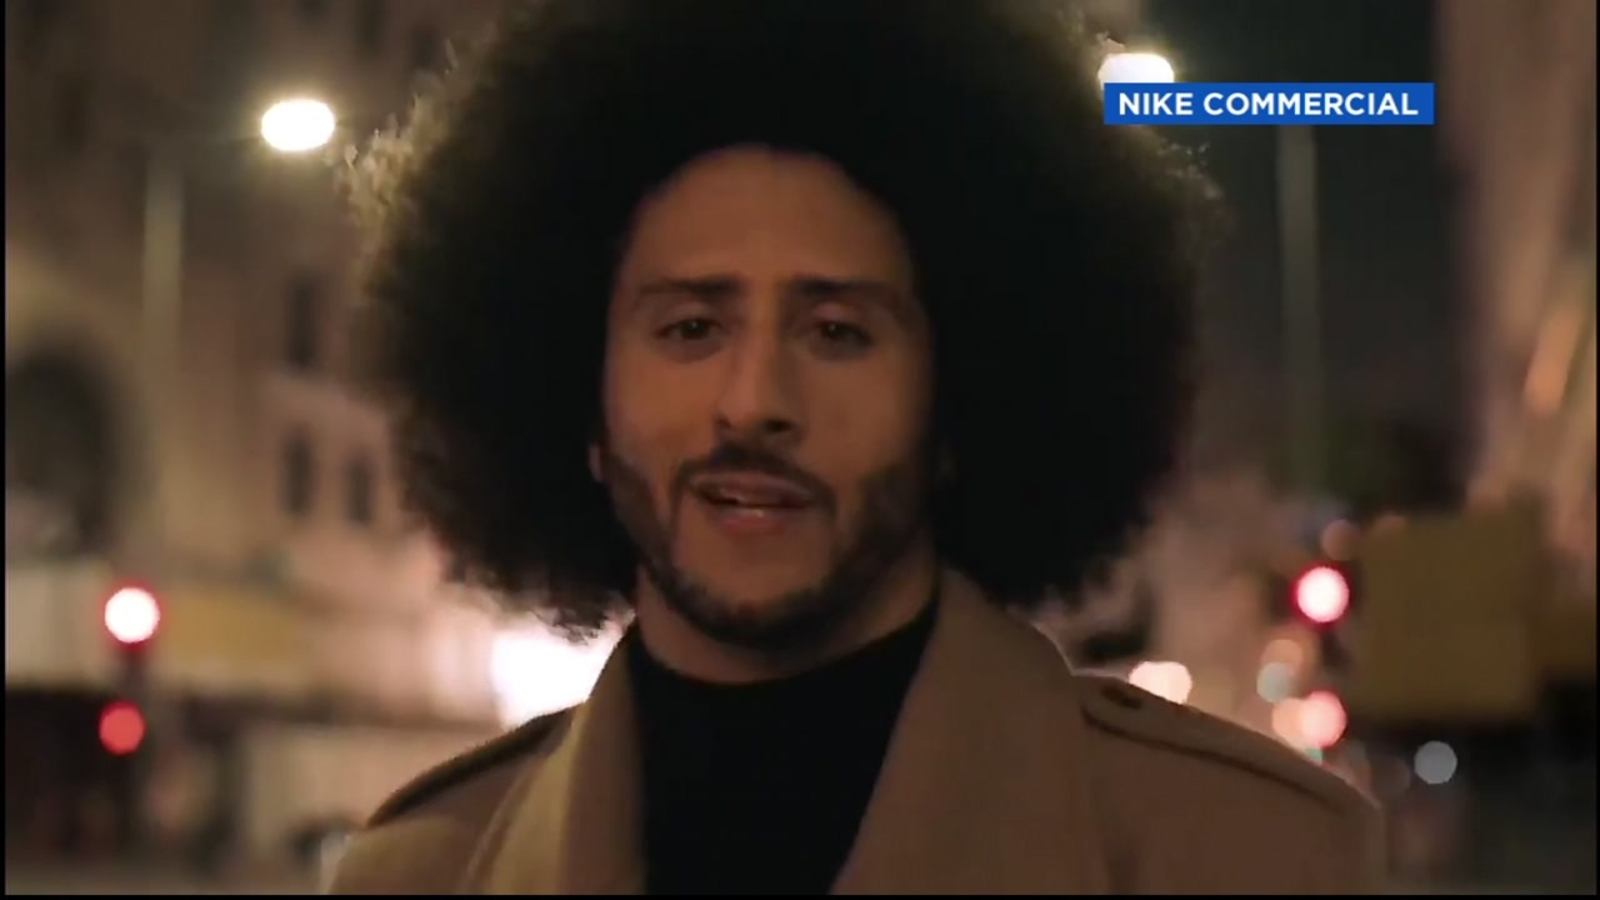 fc16083fb VIDEO  Nike releases new commercial narrated by former San Francisco 49ers  quarterback Colin Kaepernick